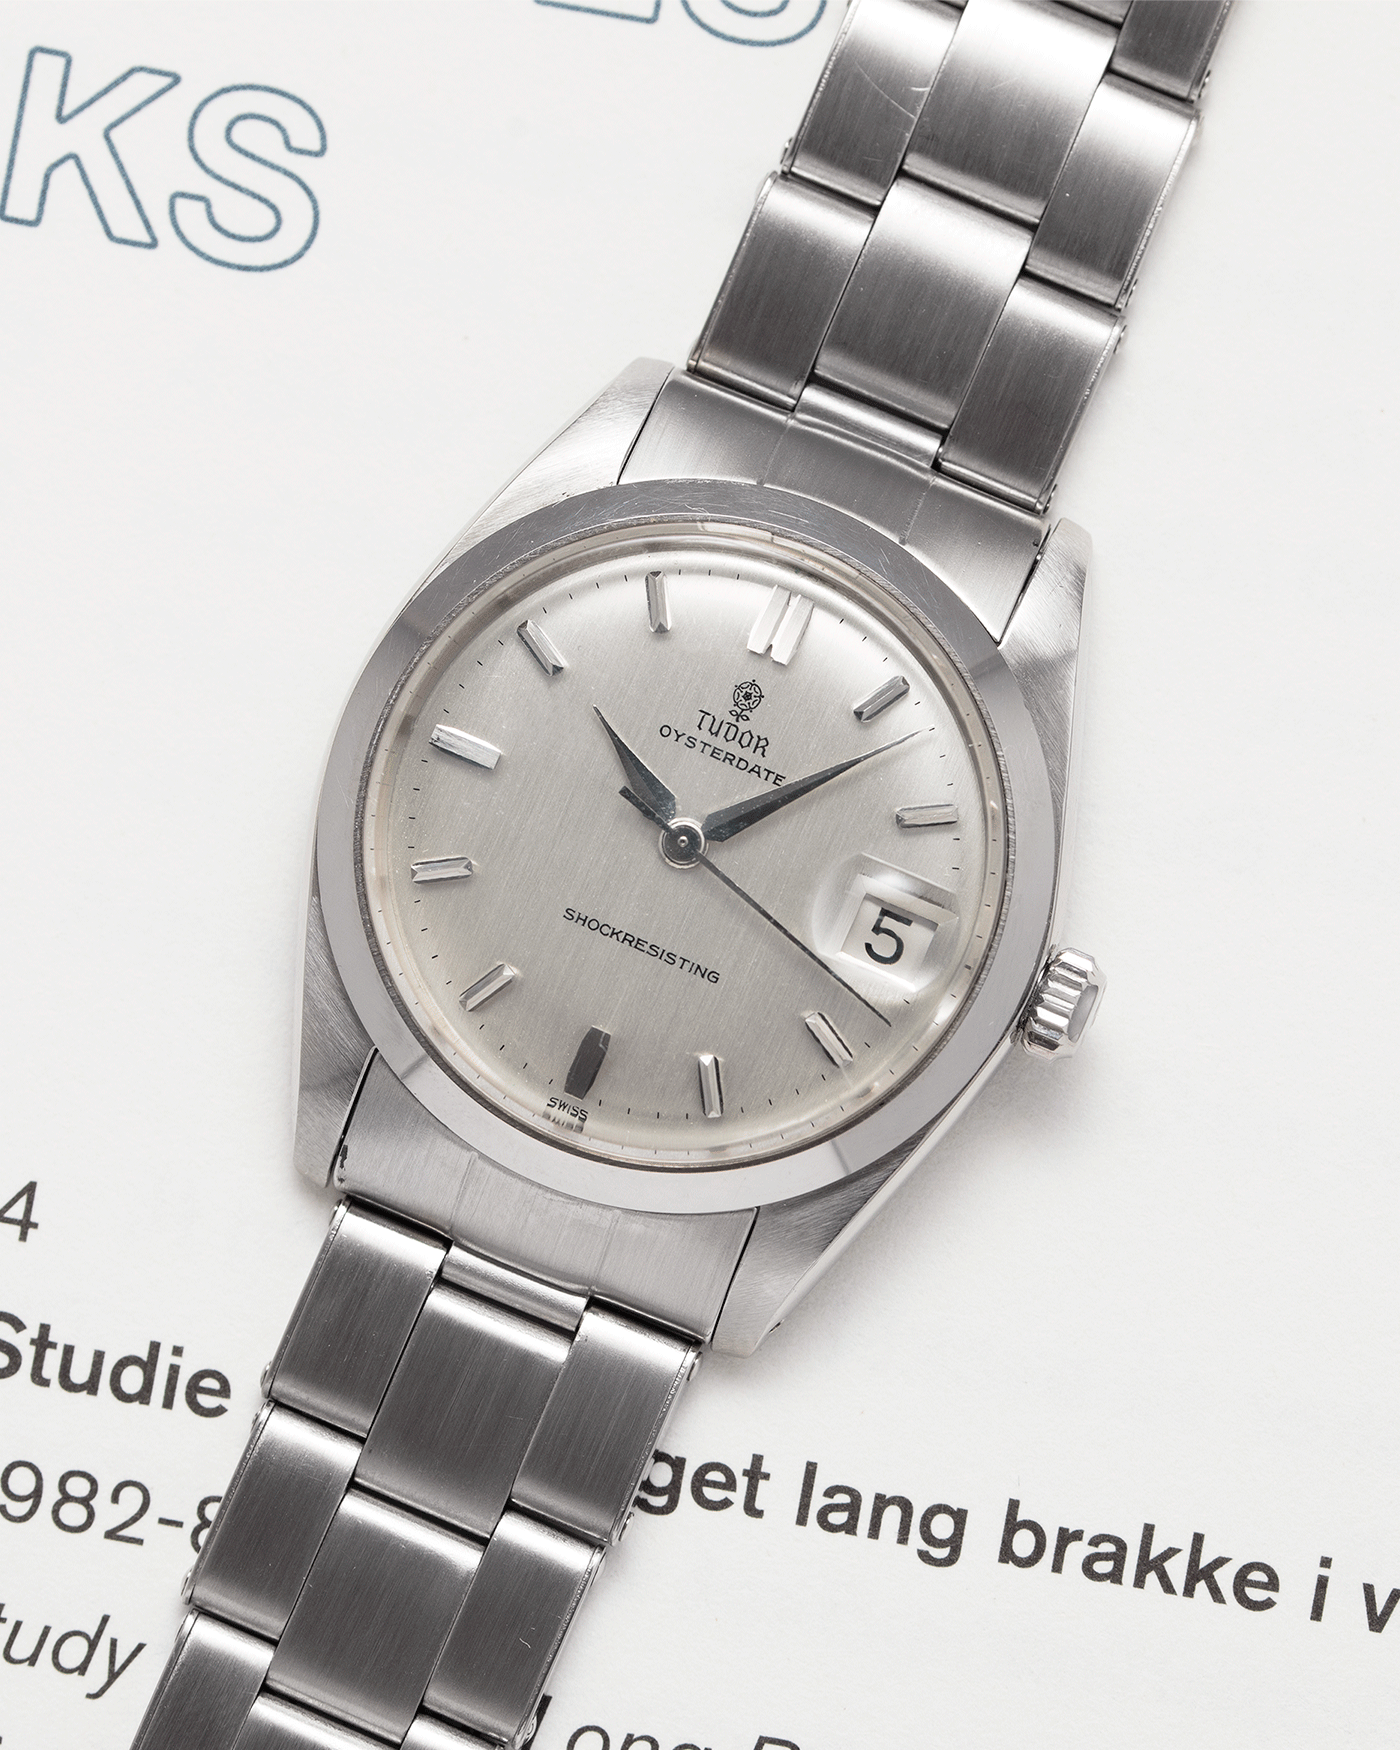 Brand: Tudor Year: 1964 Model: Oysterdate Reference Number: 7962 Serial Number: 447XXX Material: Stainless Steel Movement: Cal. 2403 Case Diameter: 34.5mm Lug Width: 19mm Bracelet/Strap: 19mm Rolex Rivet Bracelet with 57 endlinks, stamped 3.64